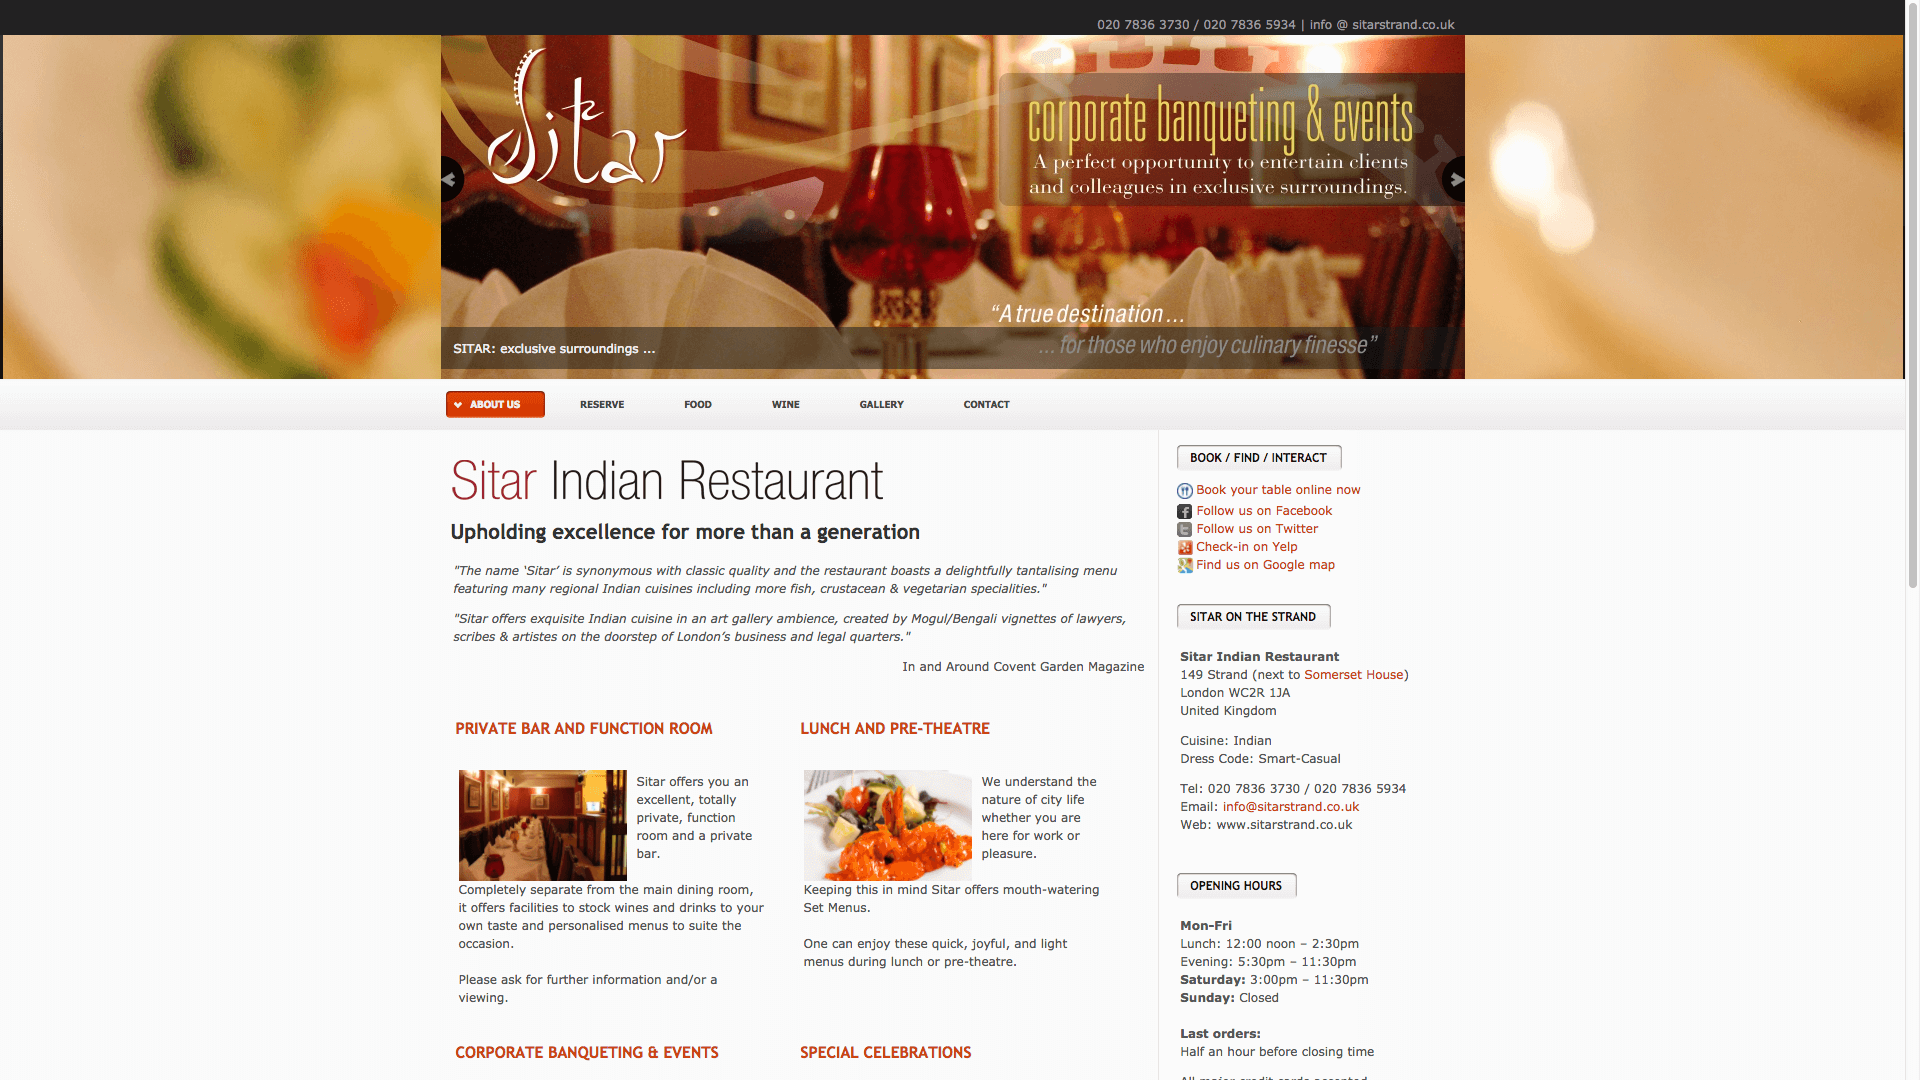 Shapur before 1 - Website design for Indian Restaurant